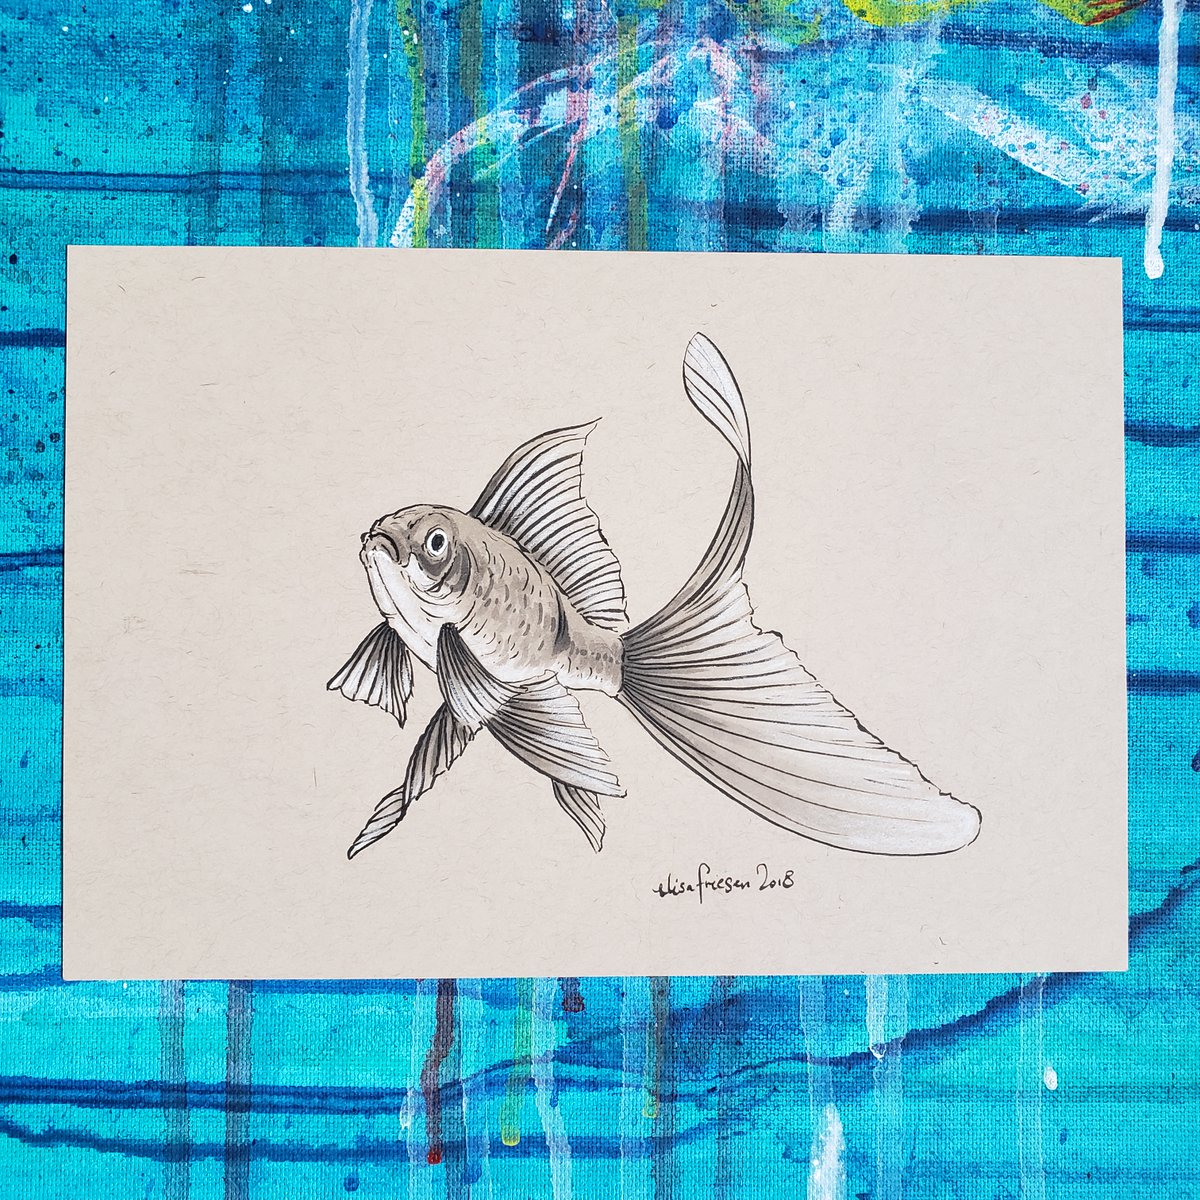 "I'm letting go of old art via auction.  Today's thing is this 6 x 8.5"" toned paper goldfish! #tonedpaper #ink #goldfish #elisashigehiro #elisashigehiroart #LettingGo #ArtAuction https://t.co/qcUFCxjXtw"